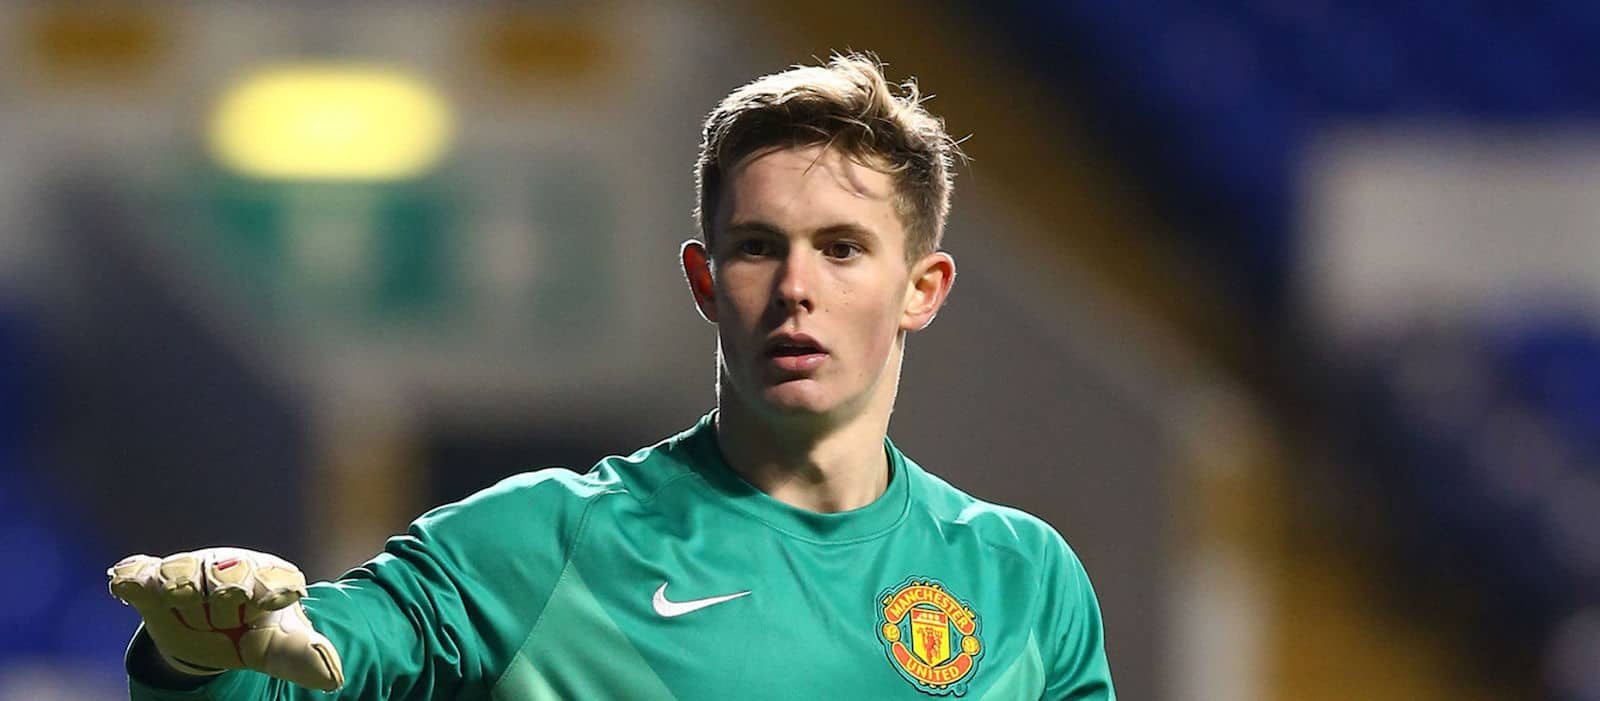 Manchester United's Dean Henderson has signed for Grimsby Town on loan